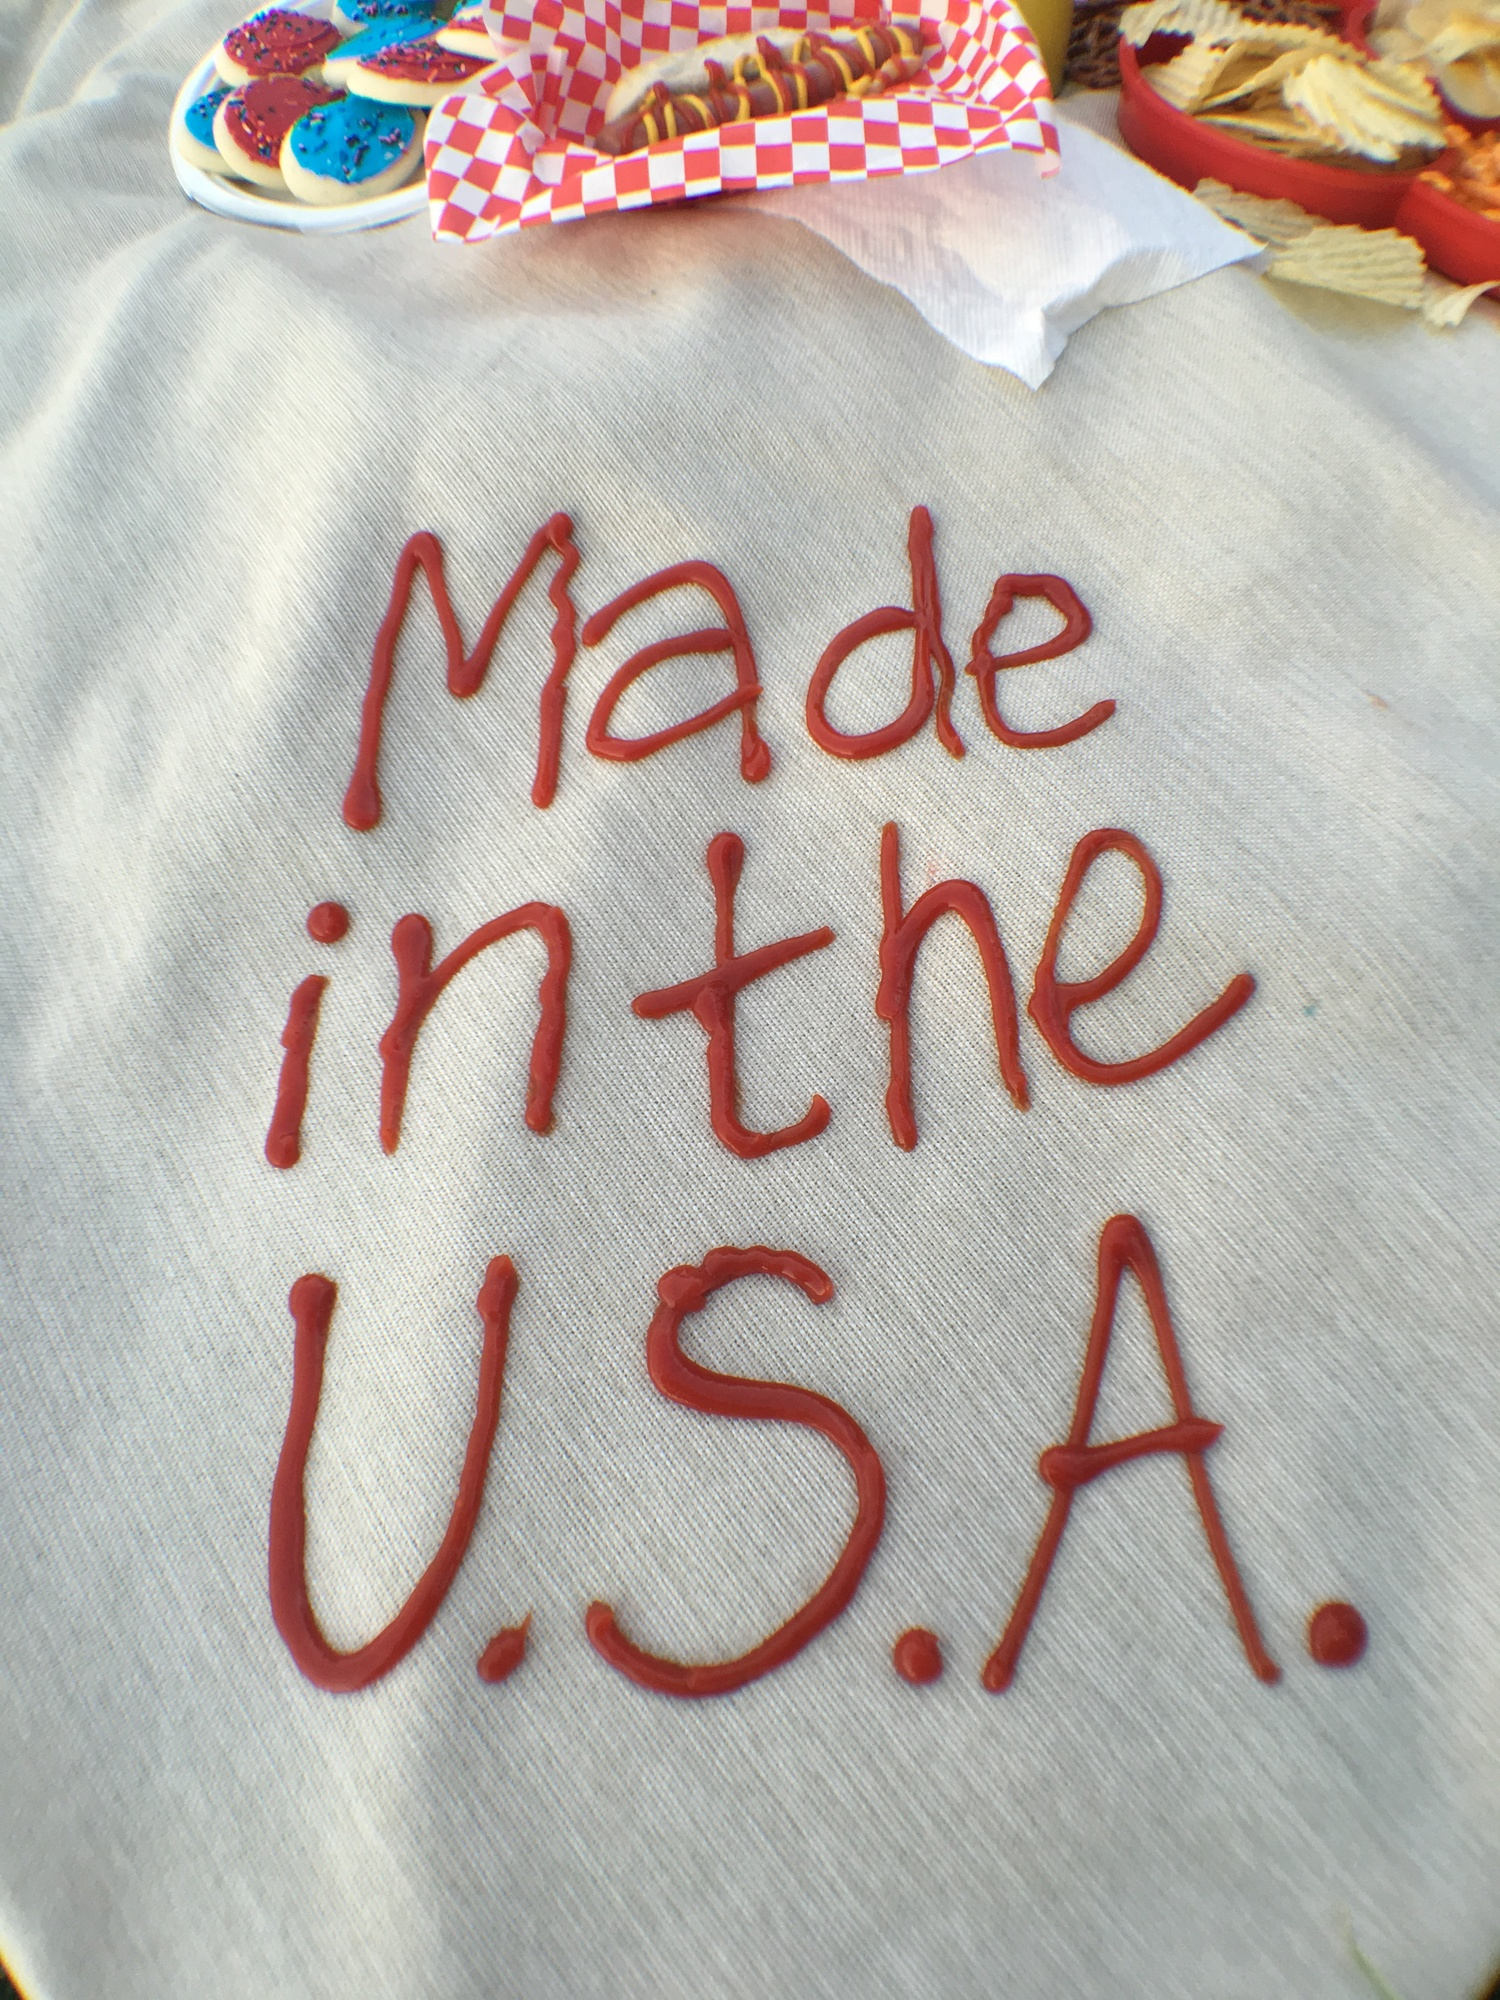 Fabric made in the USA